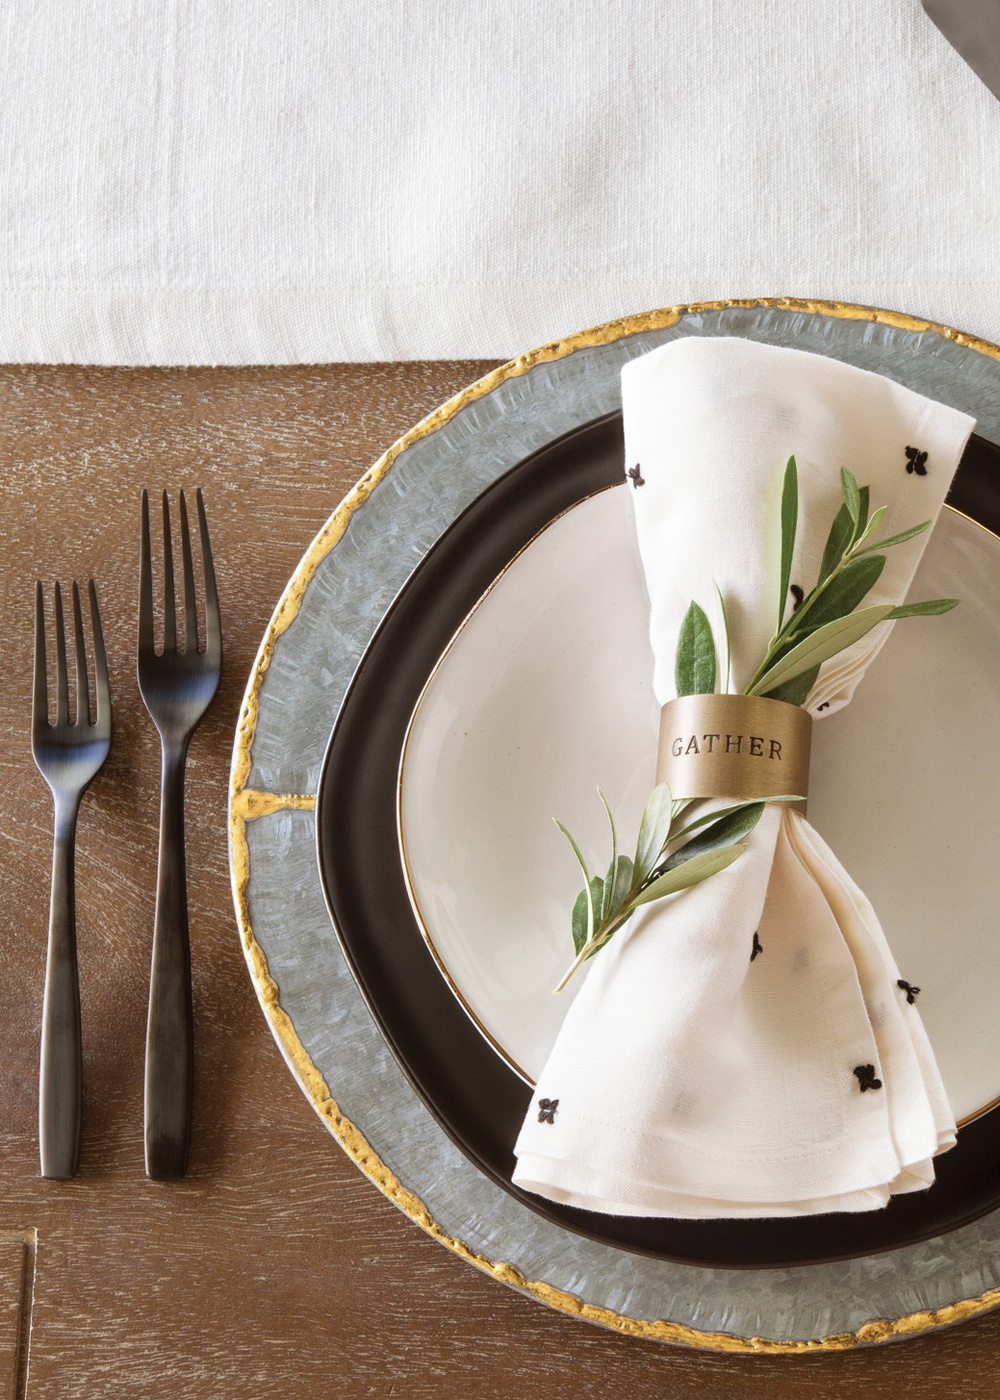 Favorite Pieces from the Hearth & Hand™ with Magnolia Line at Target